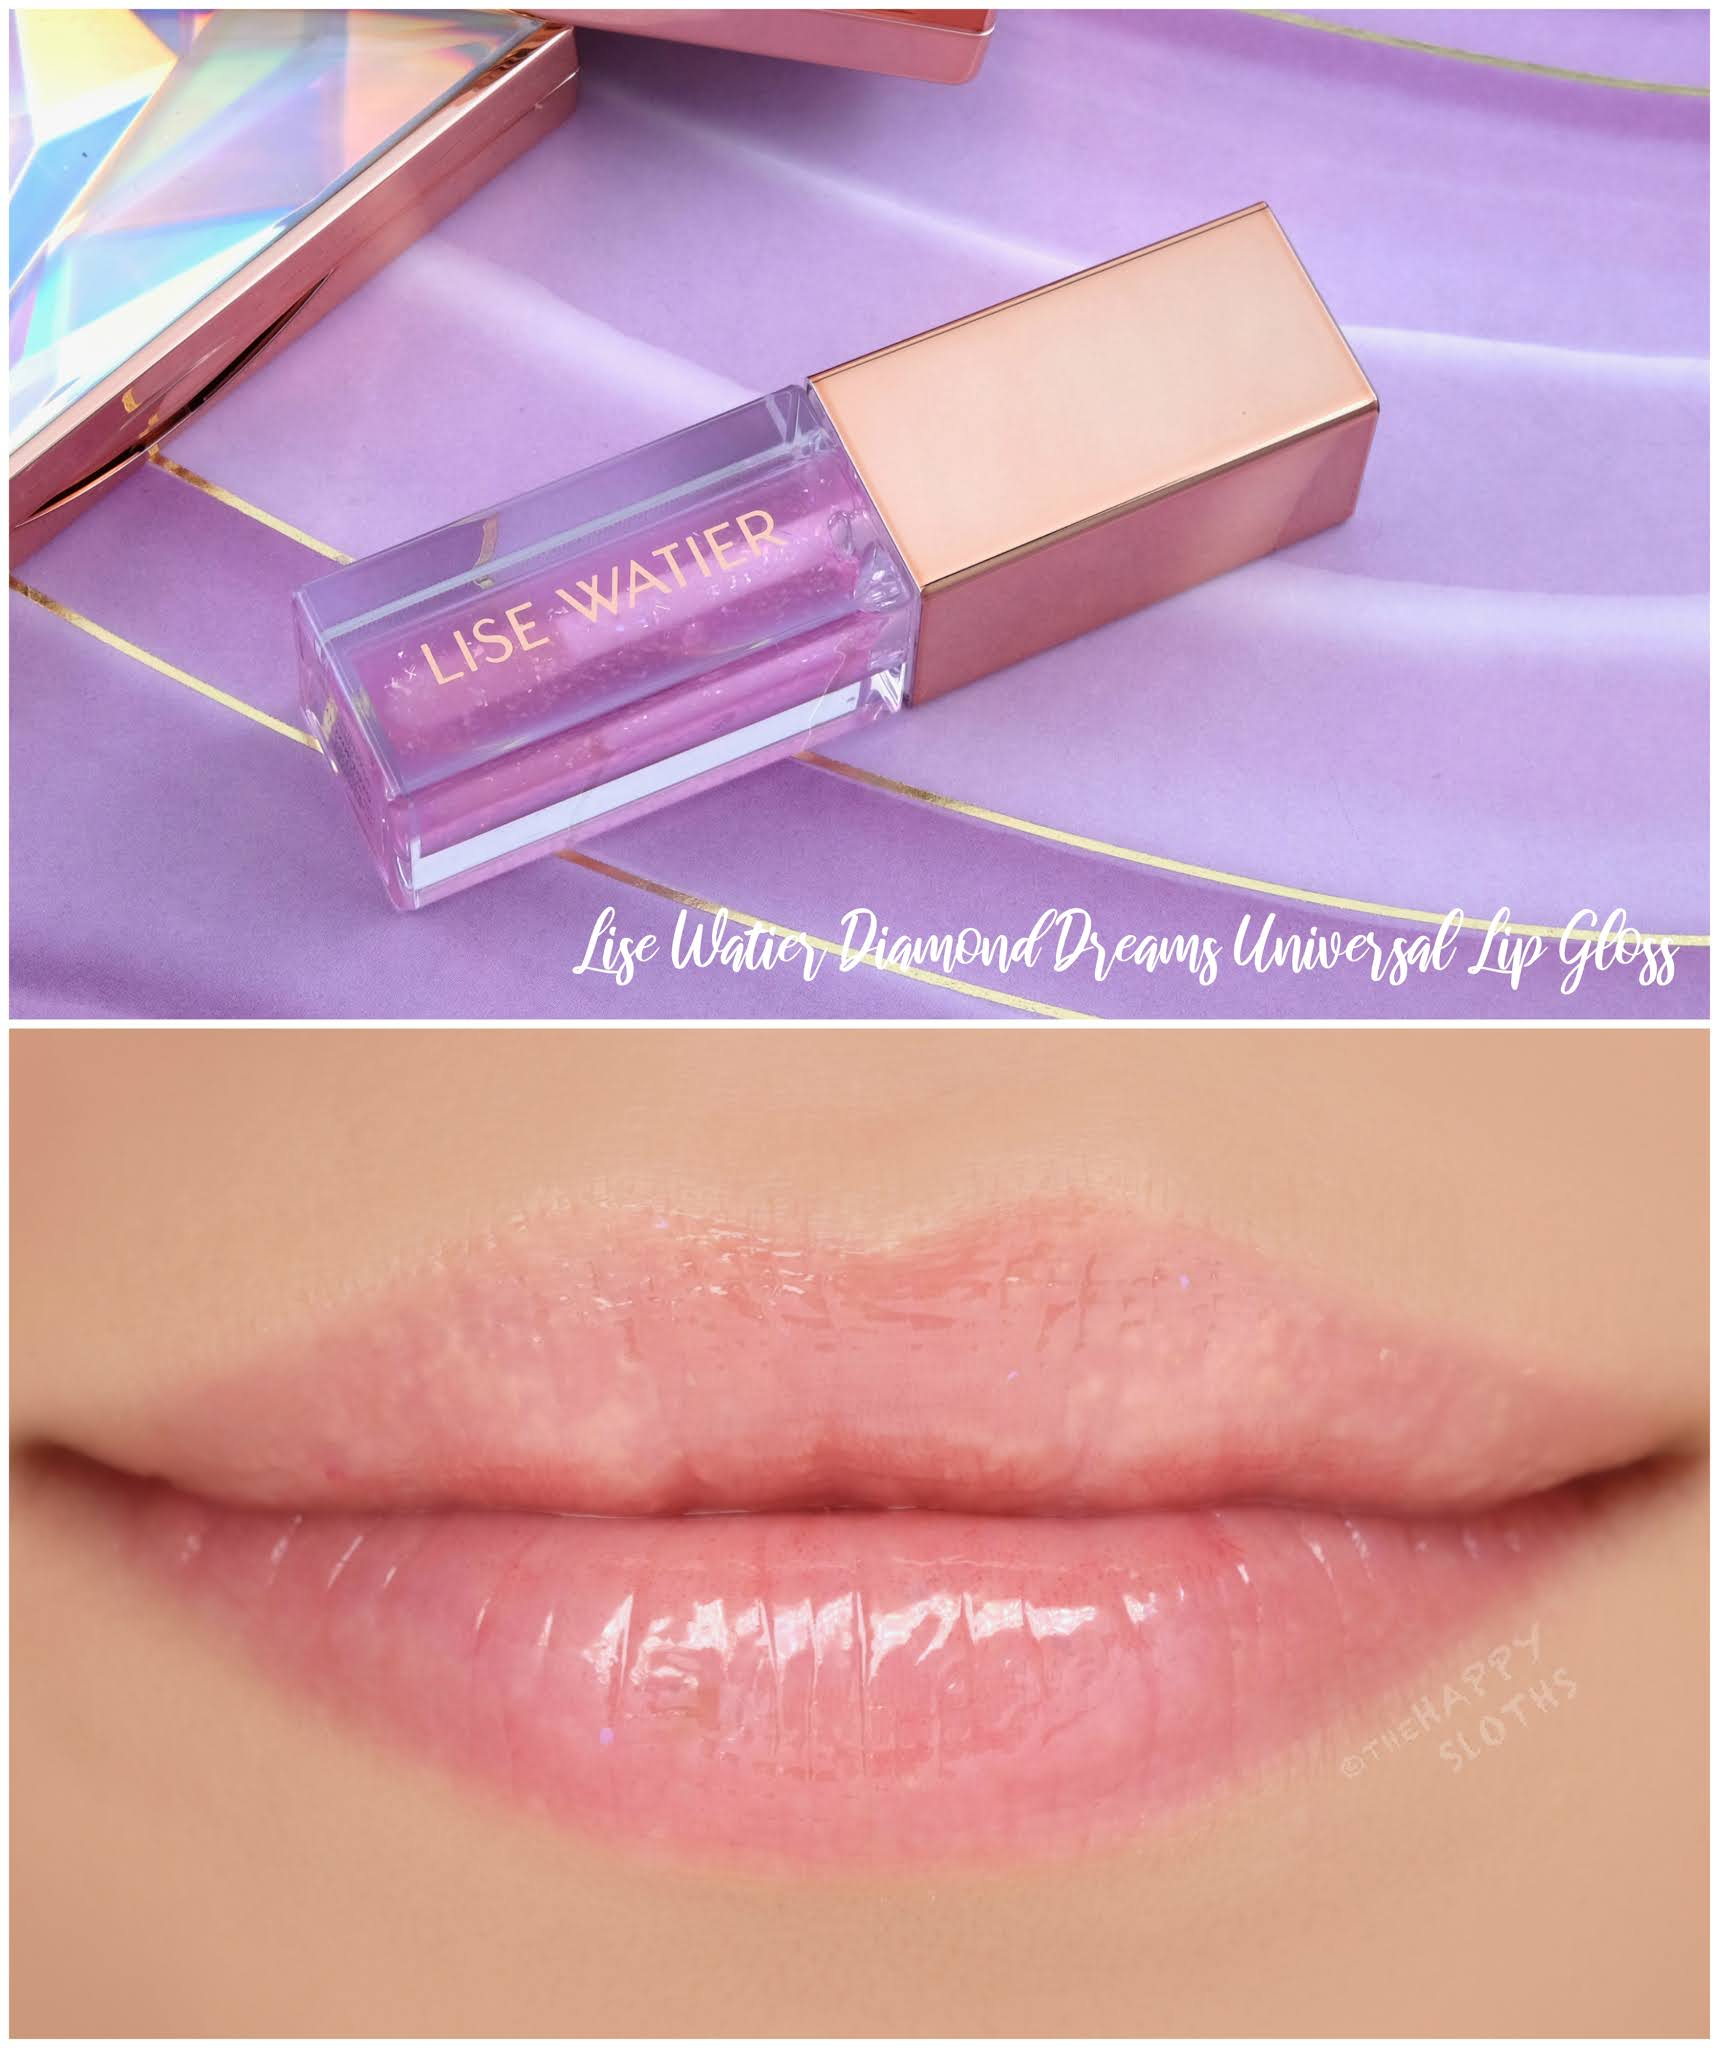 Lise Watier | Holiday 2020 Universal Lip Gloss: Review and Swatches